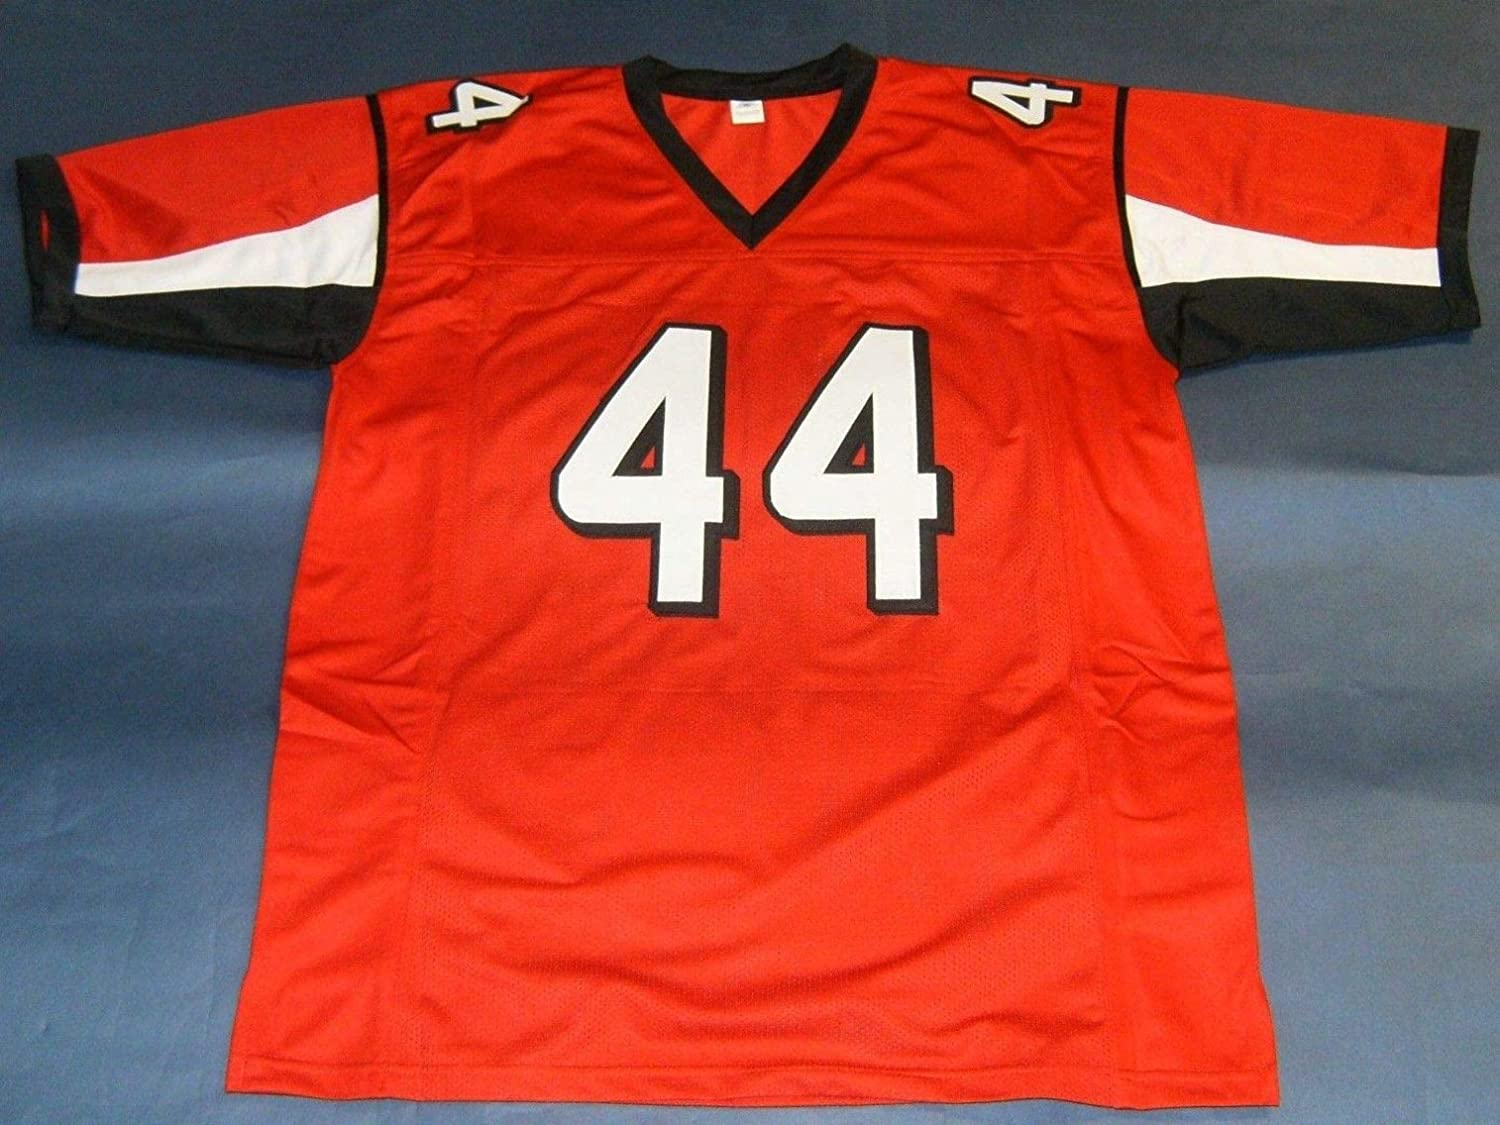 Hot VIC BEASLEY JR AUTOGRAPHED ATLANTA FALCONS JERSEY JSA at Amazon's  for cheap